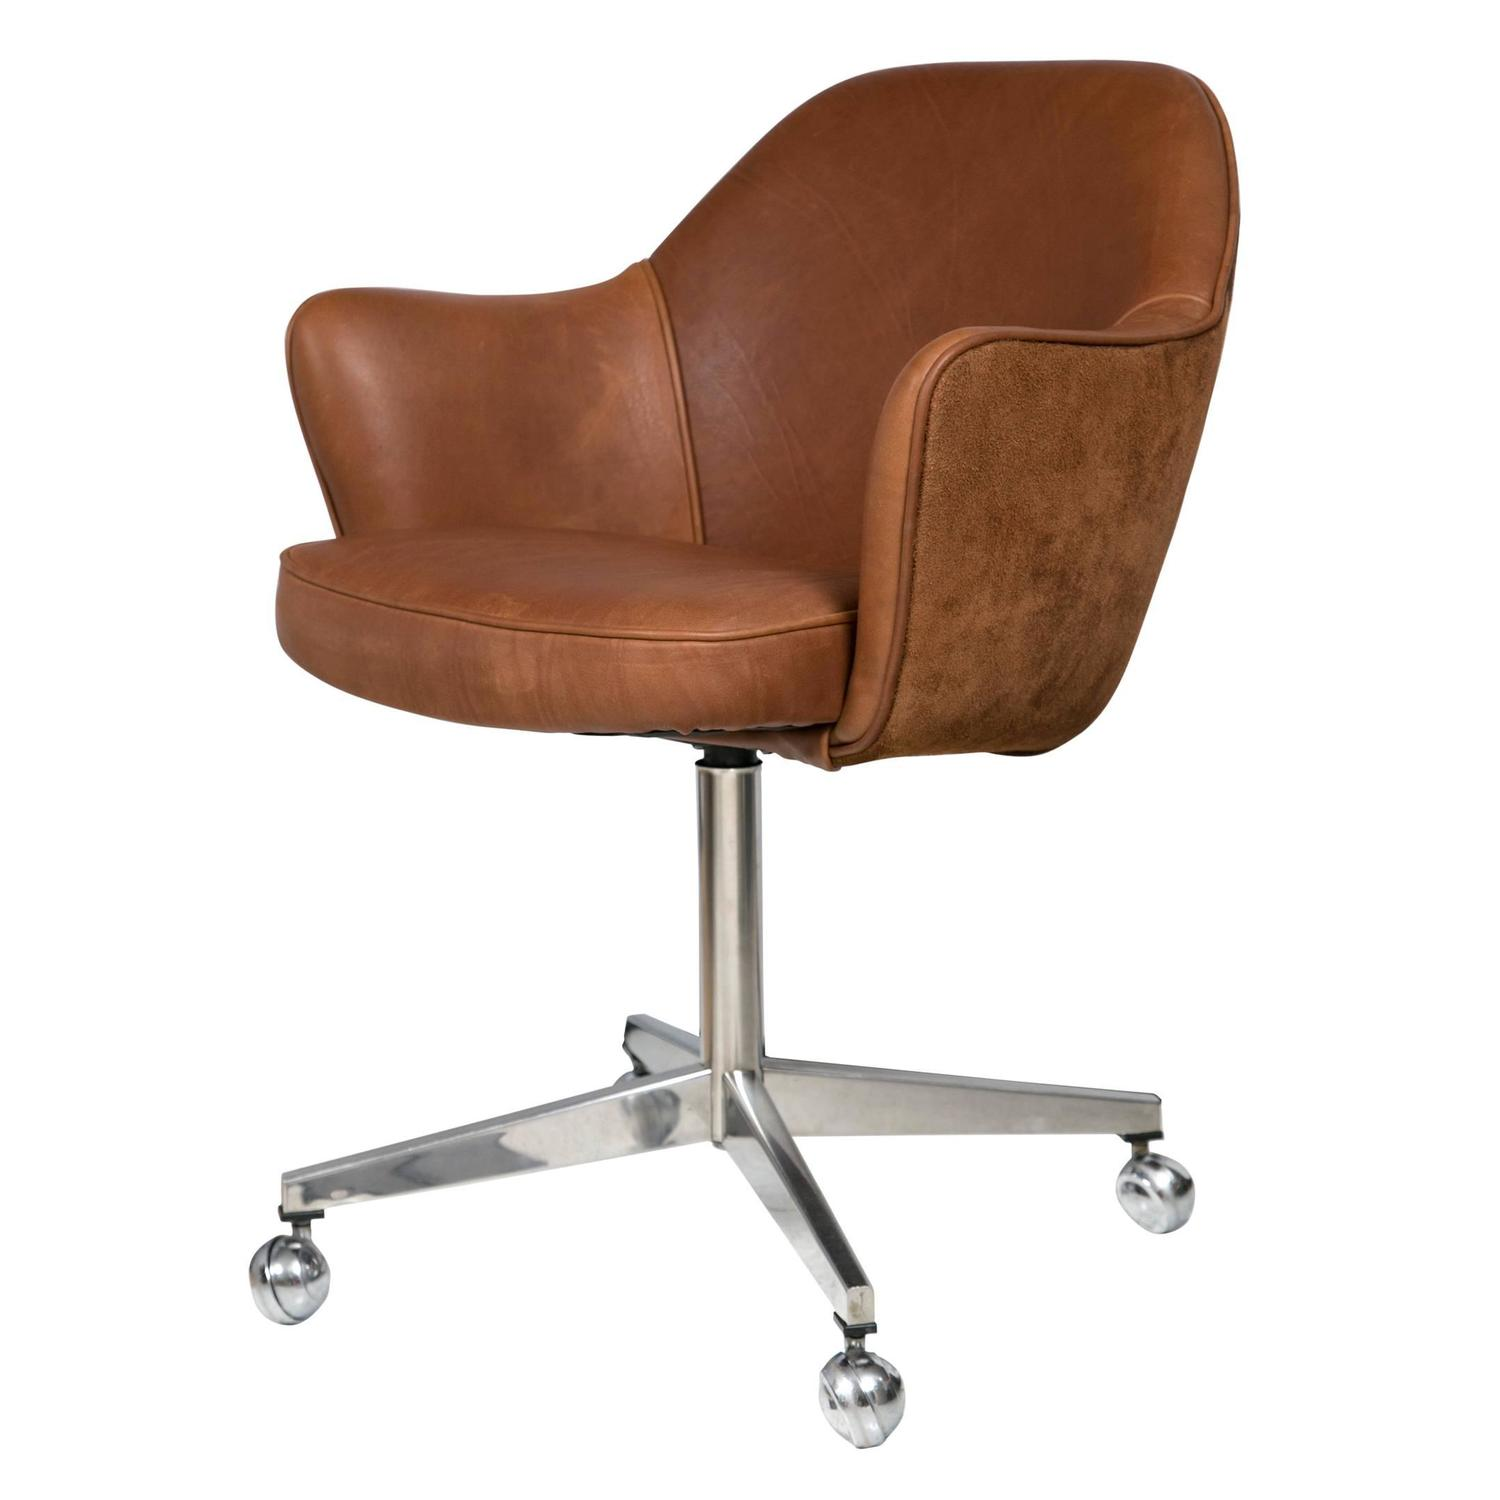 Knoll Desk Chair In Saddle Leather And Suede For Sale At